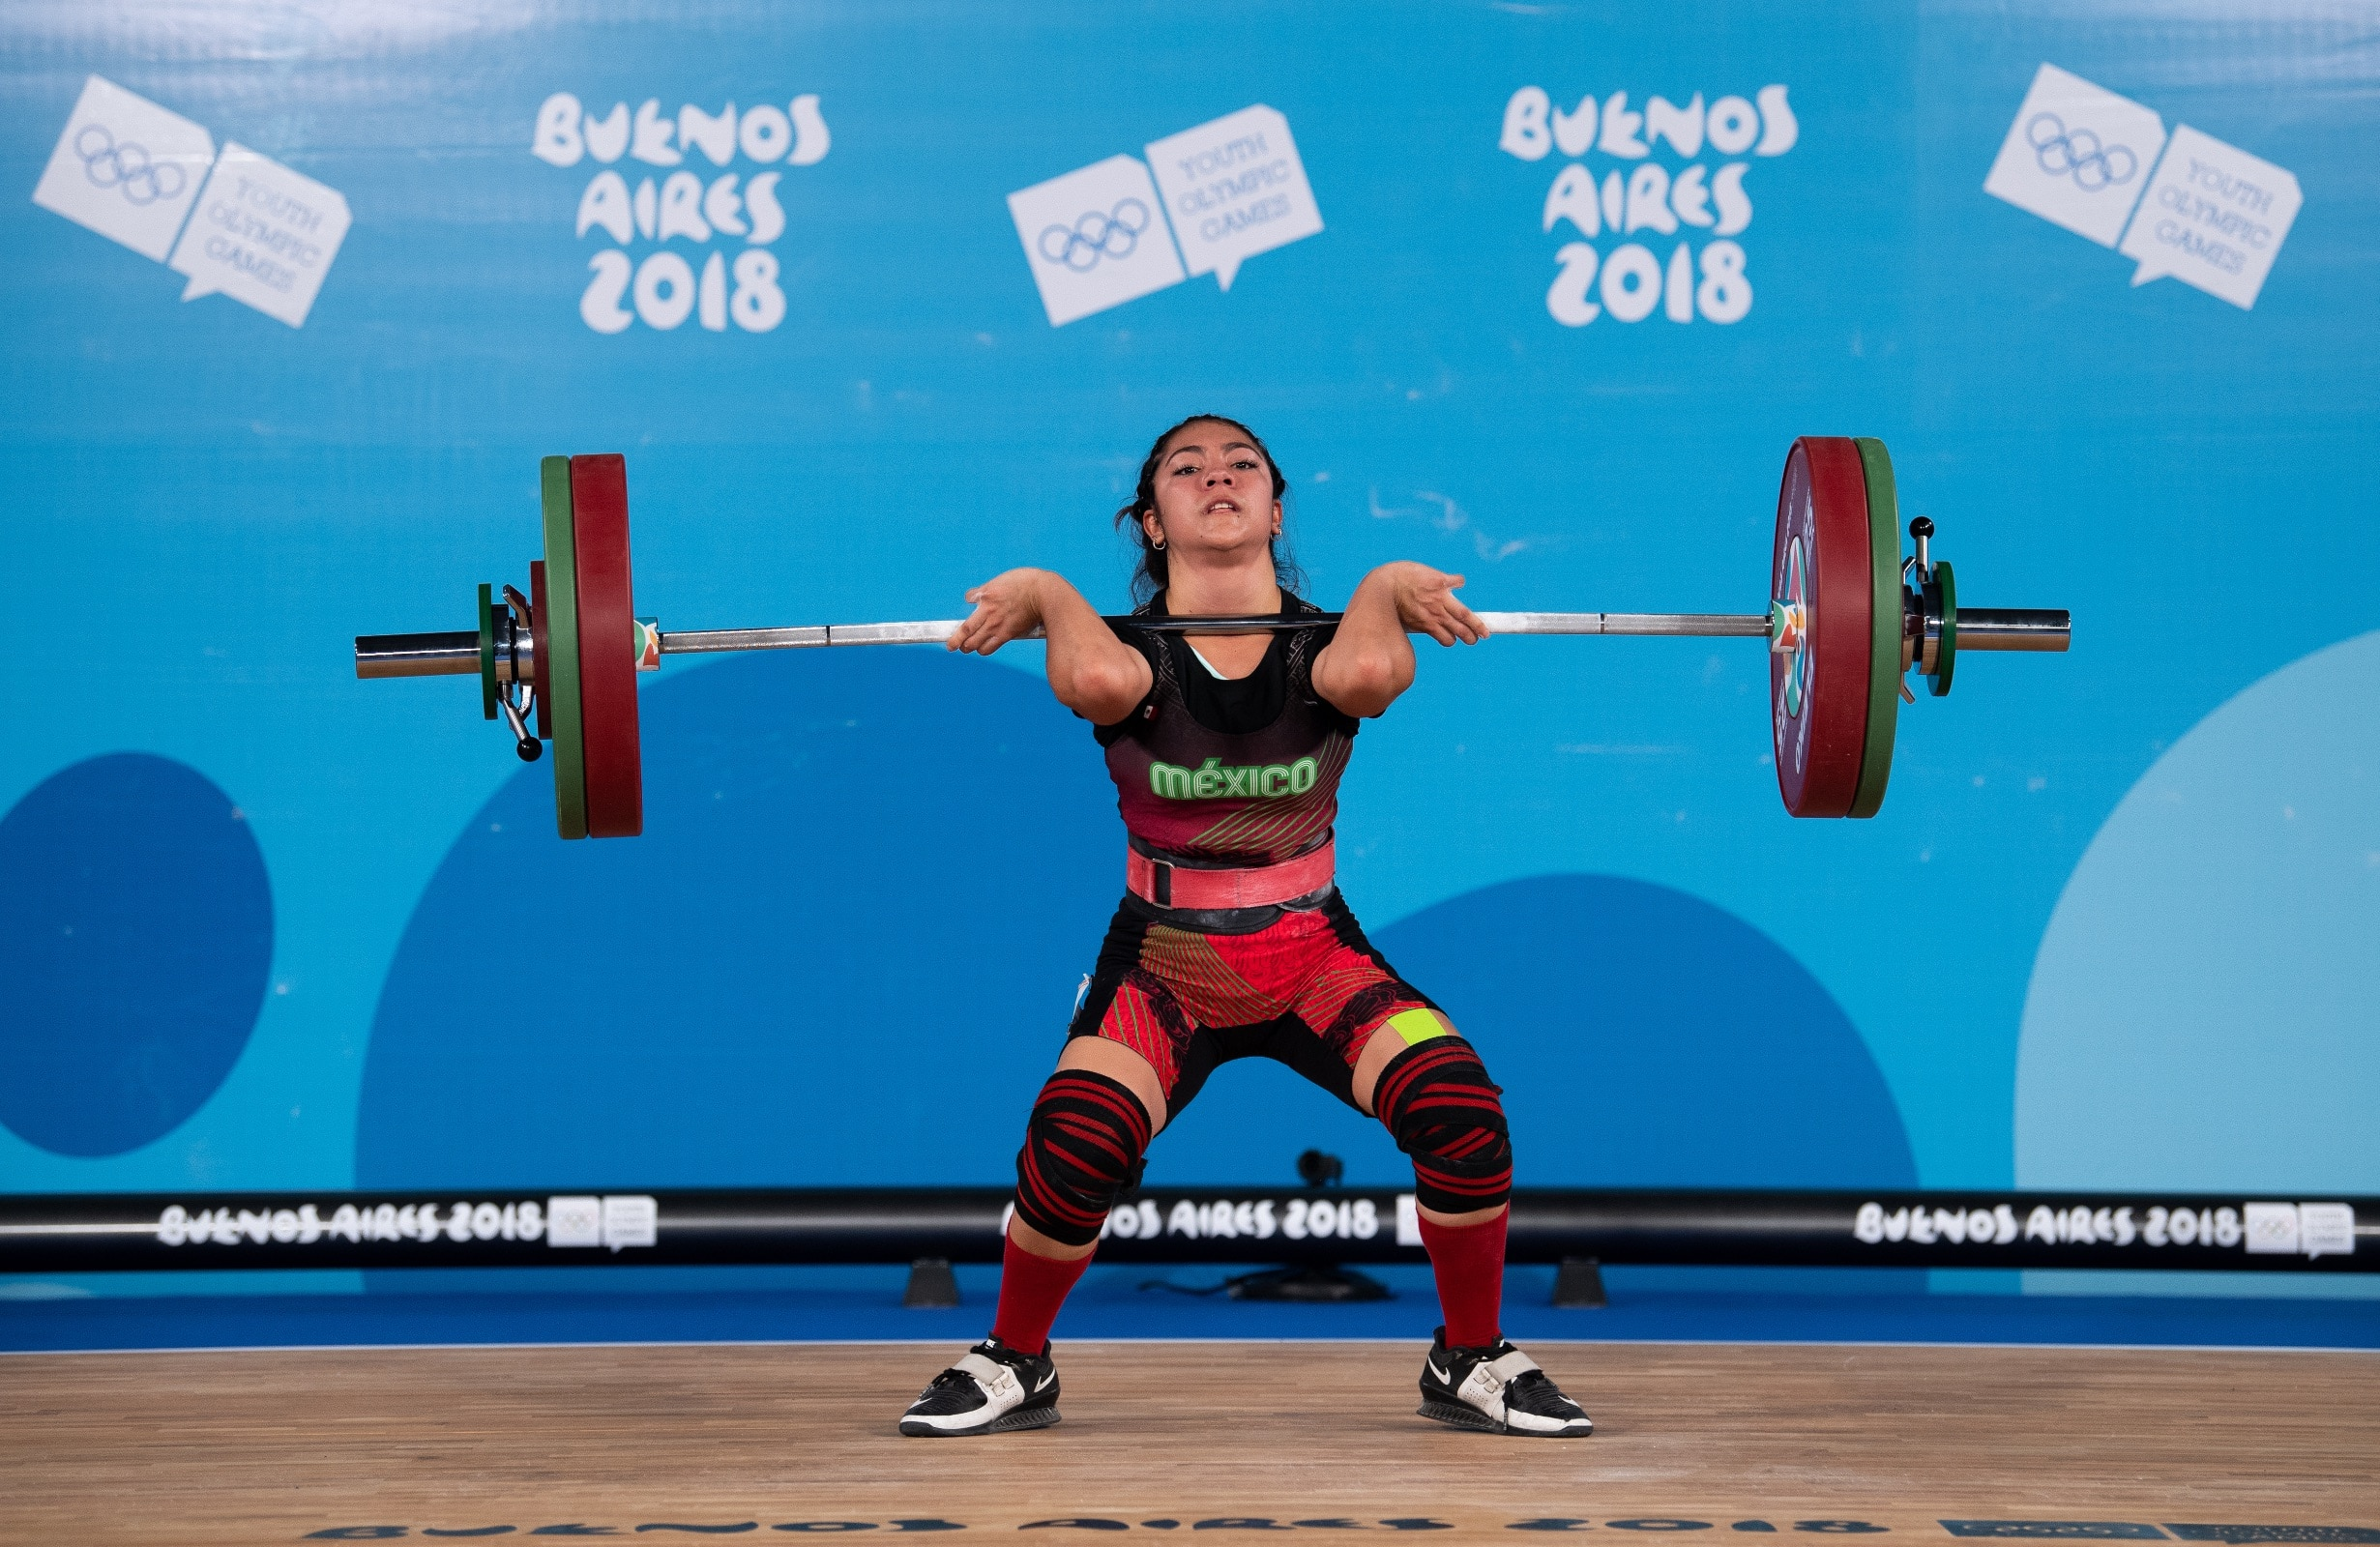 Buenos Aires 2018 - Weightlifting - Women's 48kg